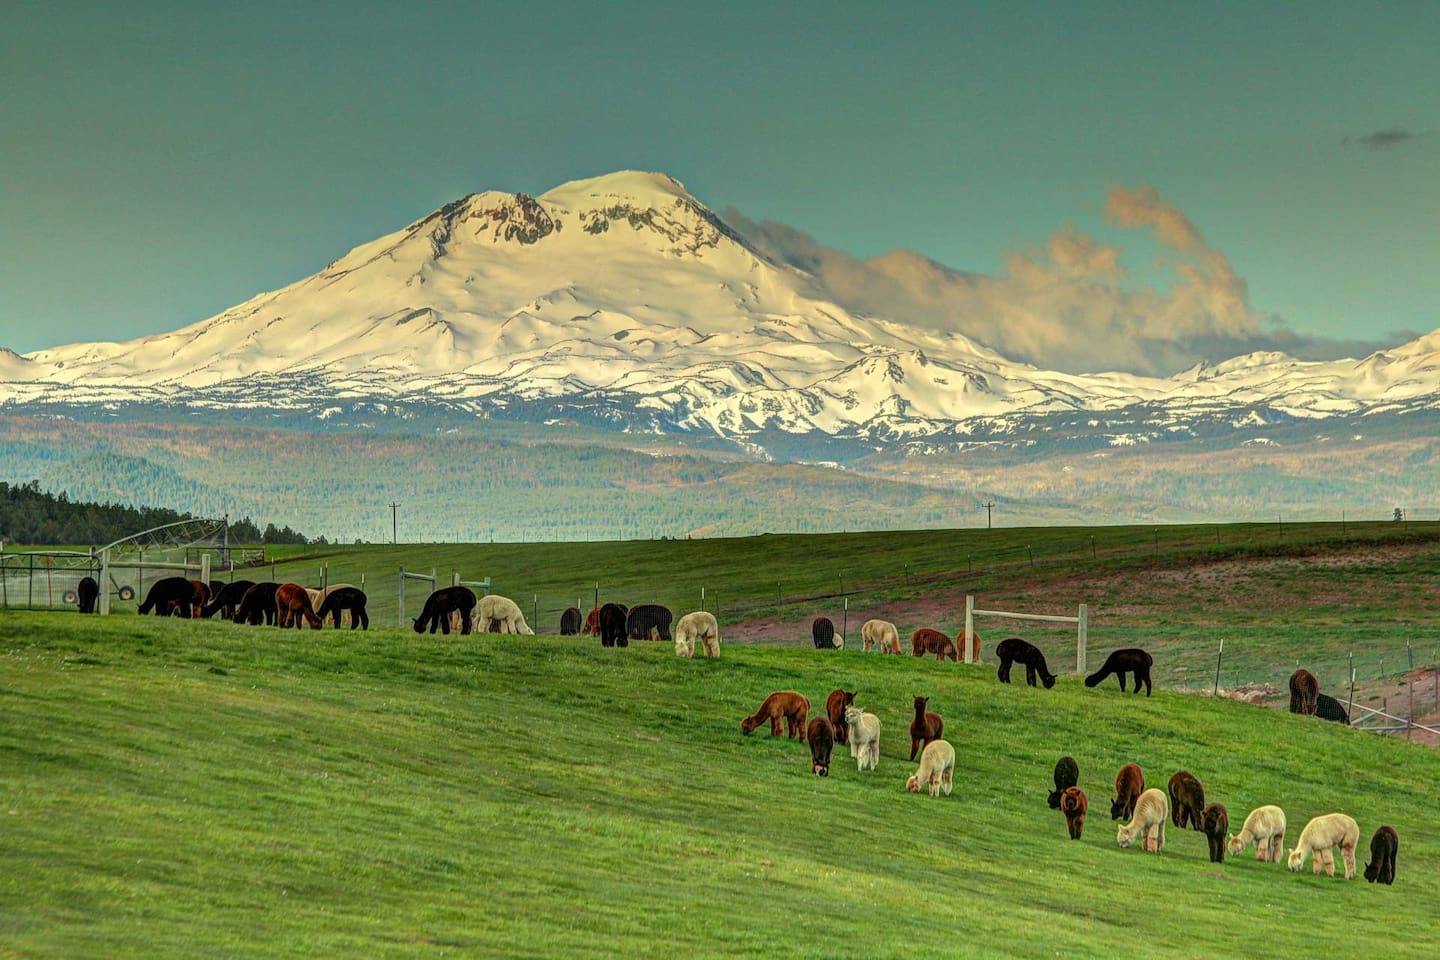 This is the view from our backyard of the Three Sisters and our alpacas in Terrebonne, Oregon